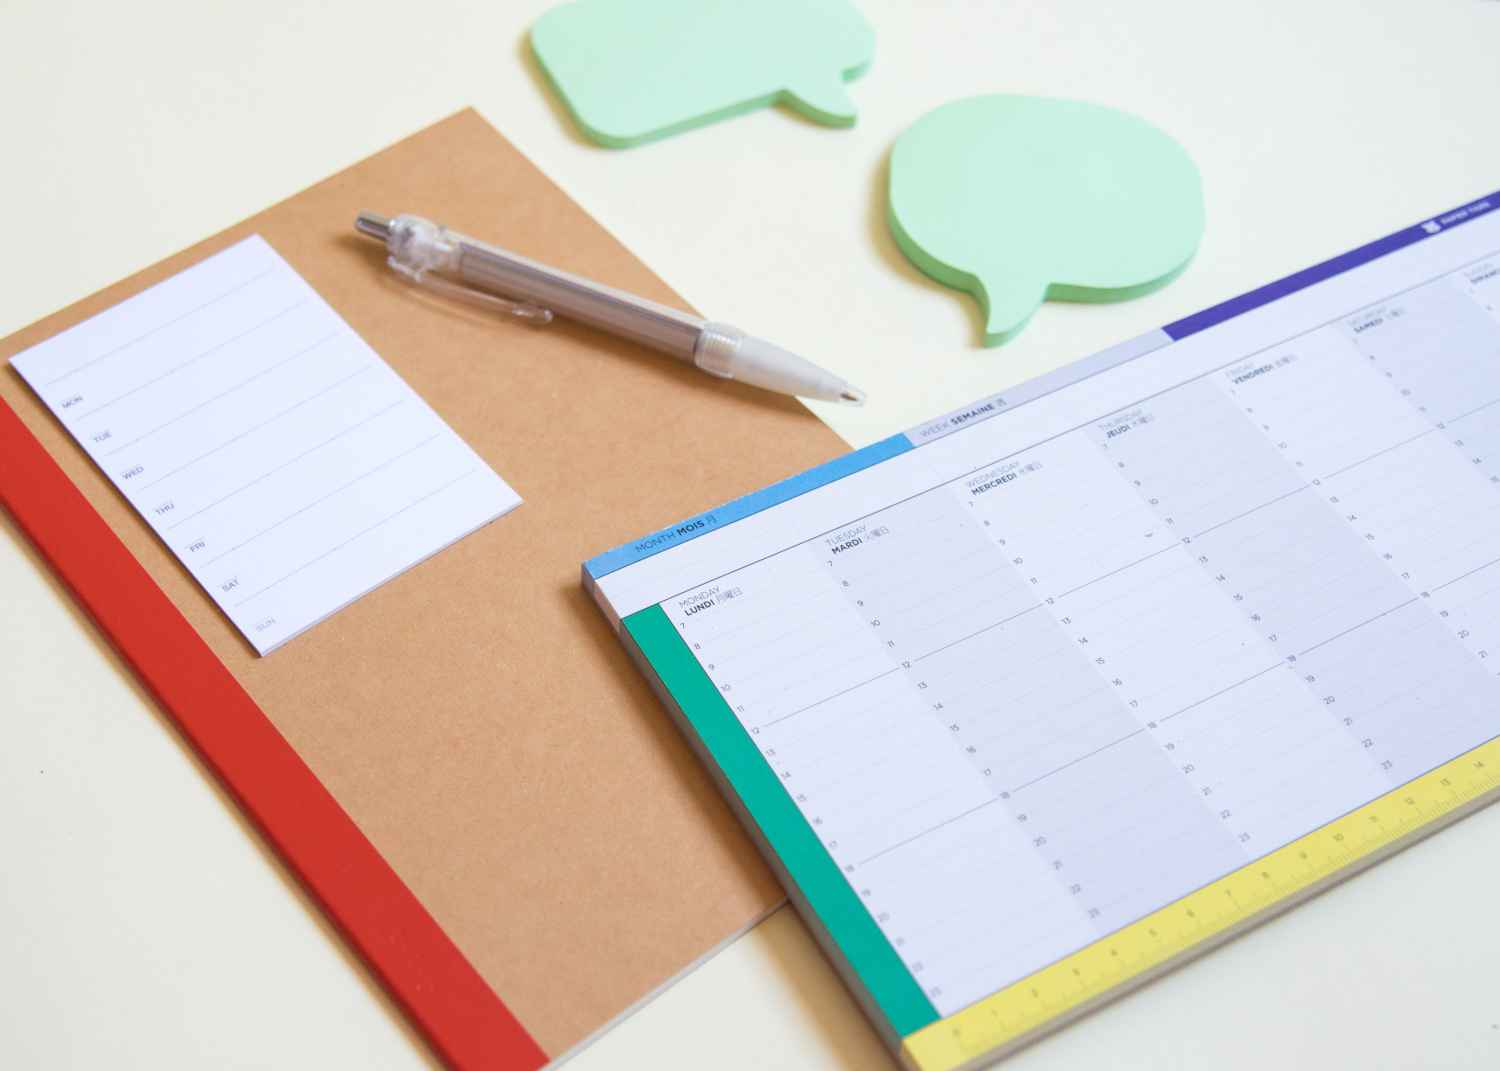 Stationery to plan with is key to strategic business thinking